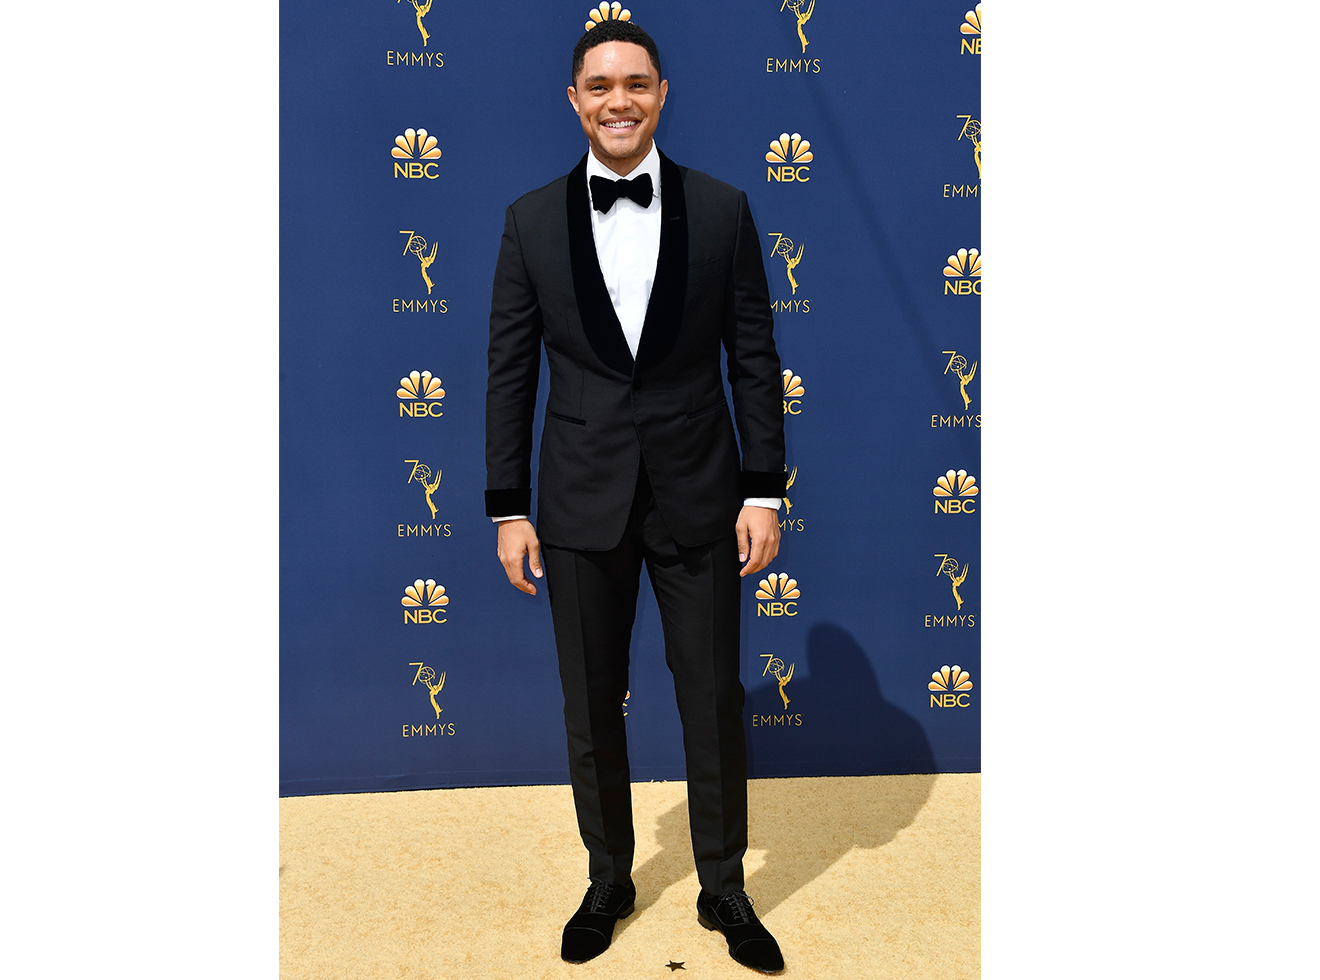 Trevor Noah attends the 70th Emmy Awards at Microsoft Theater on September 17, 2018 in Los Angeles, California.